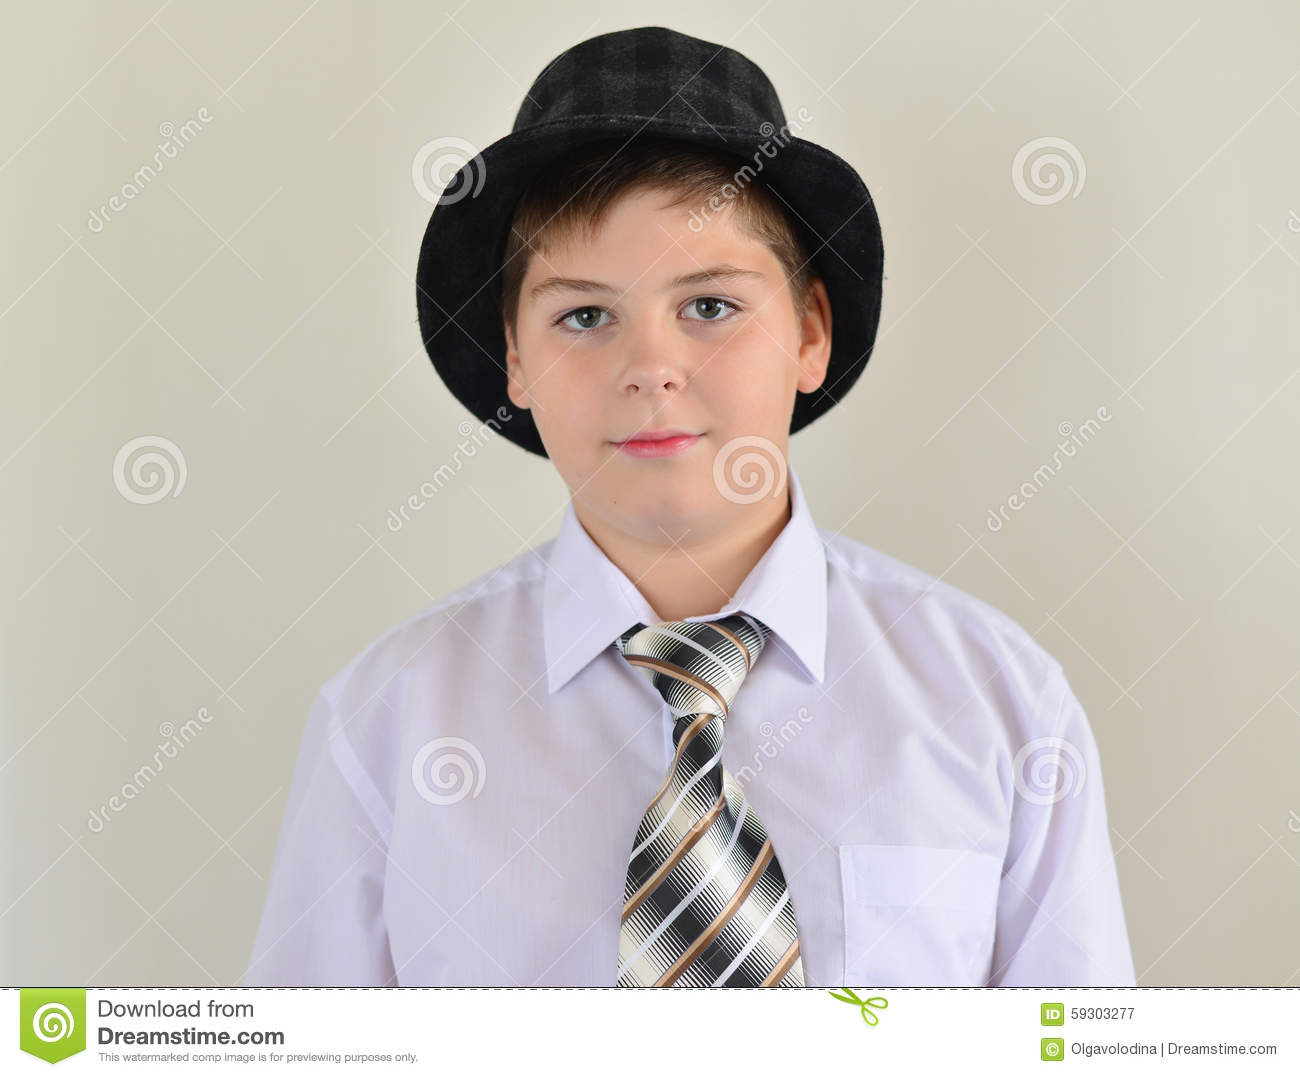 How to tie a hat to a boy